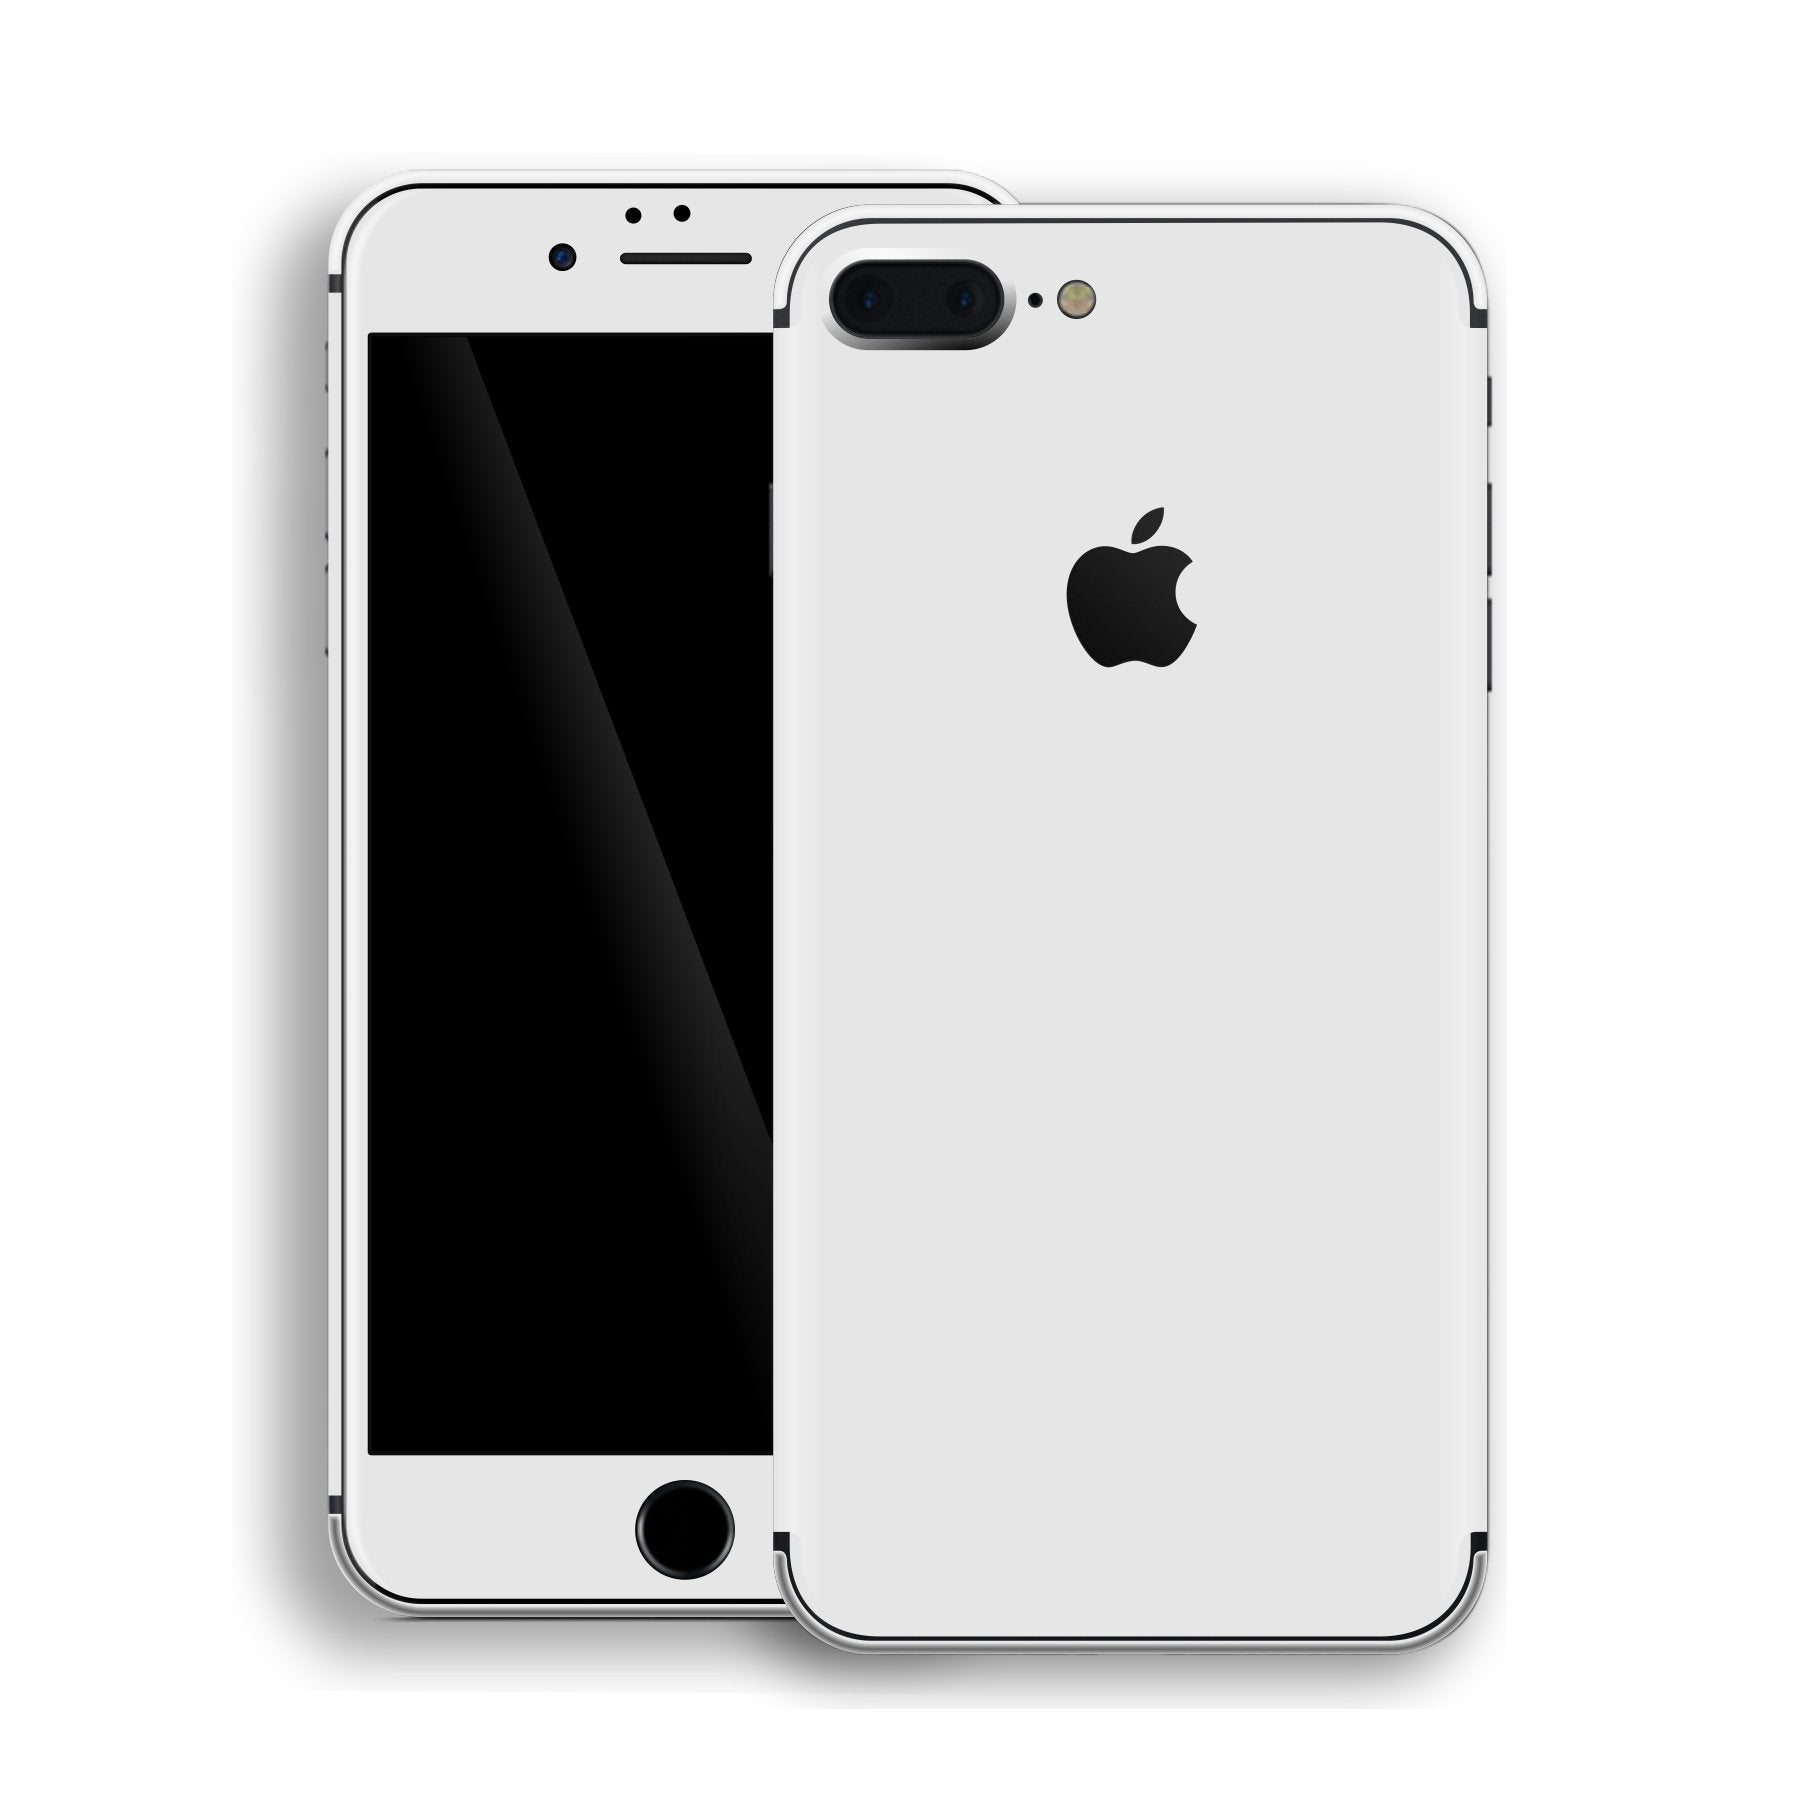 iPhone 8 Plus White Glossy Gloss Finish Skin, Decal, Wrap, Protector, Cover by EasySkinz | EasySkinz.com